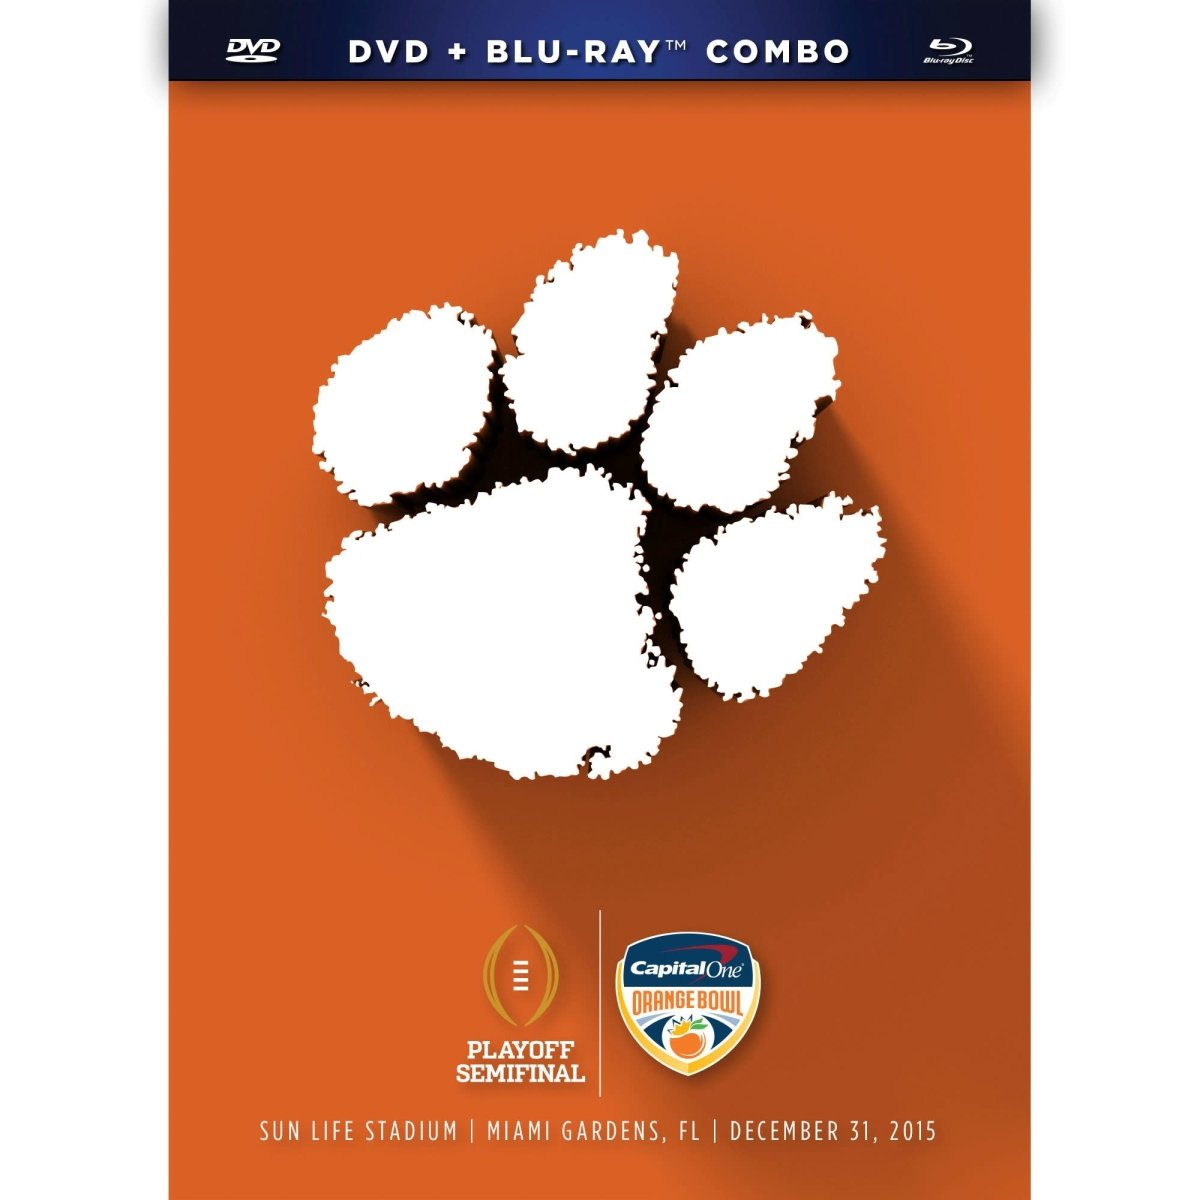 2015 College Football Playoffs Orange Bowl Dvd - Mr. Knickerbocker